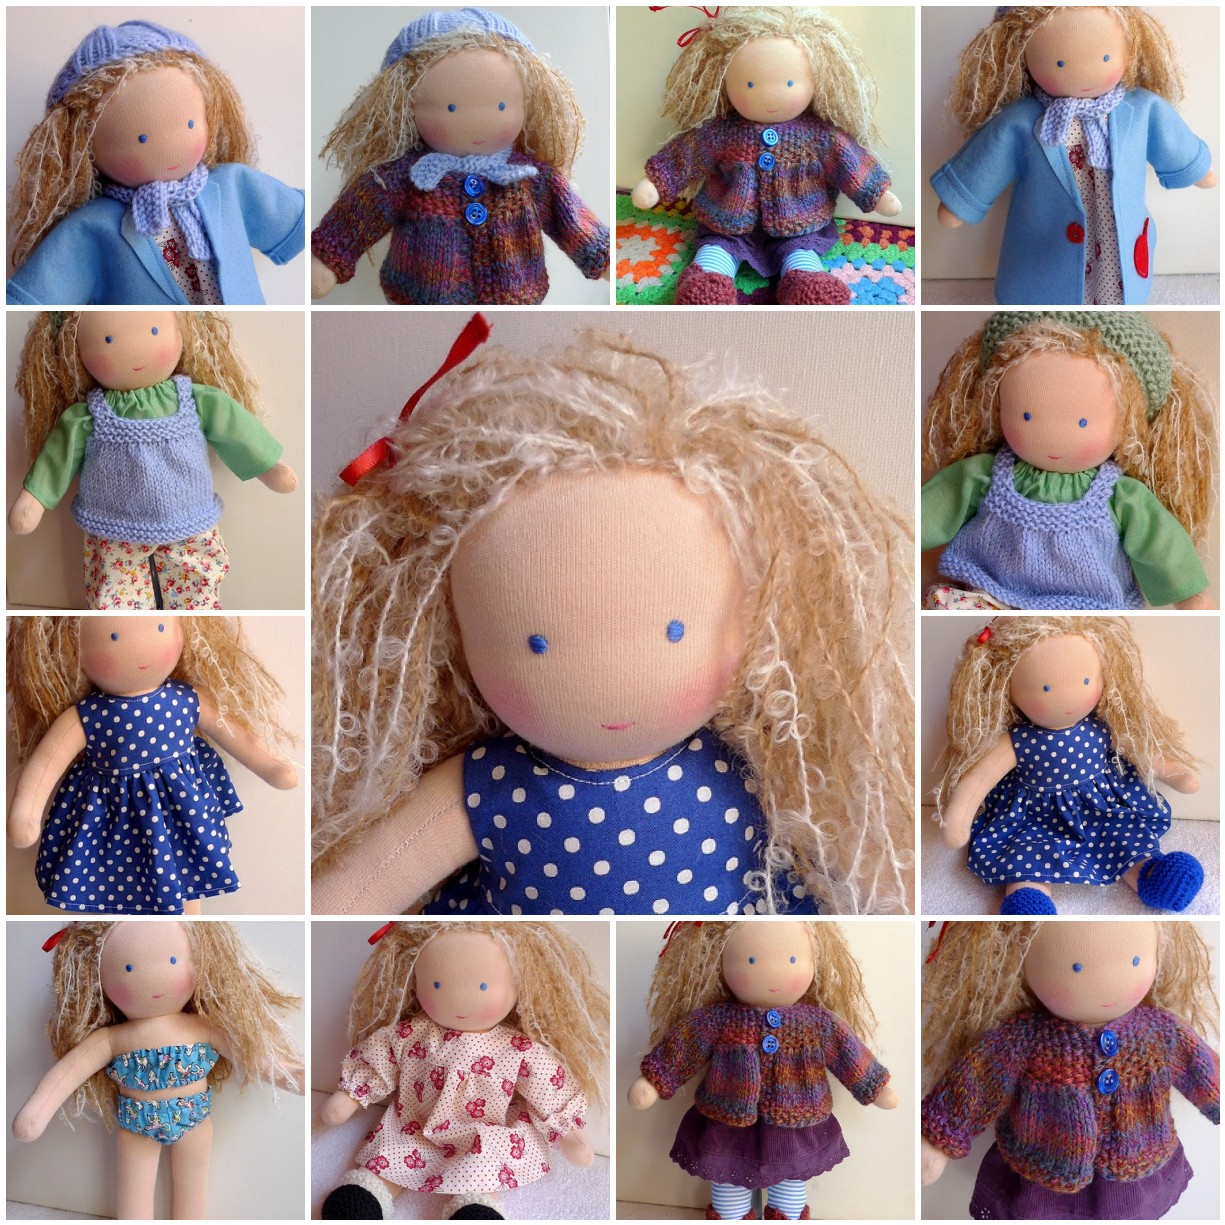 Alison's doll